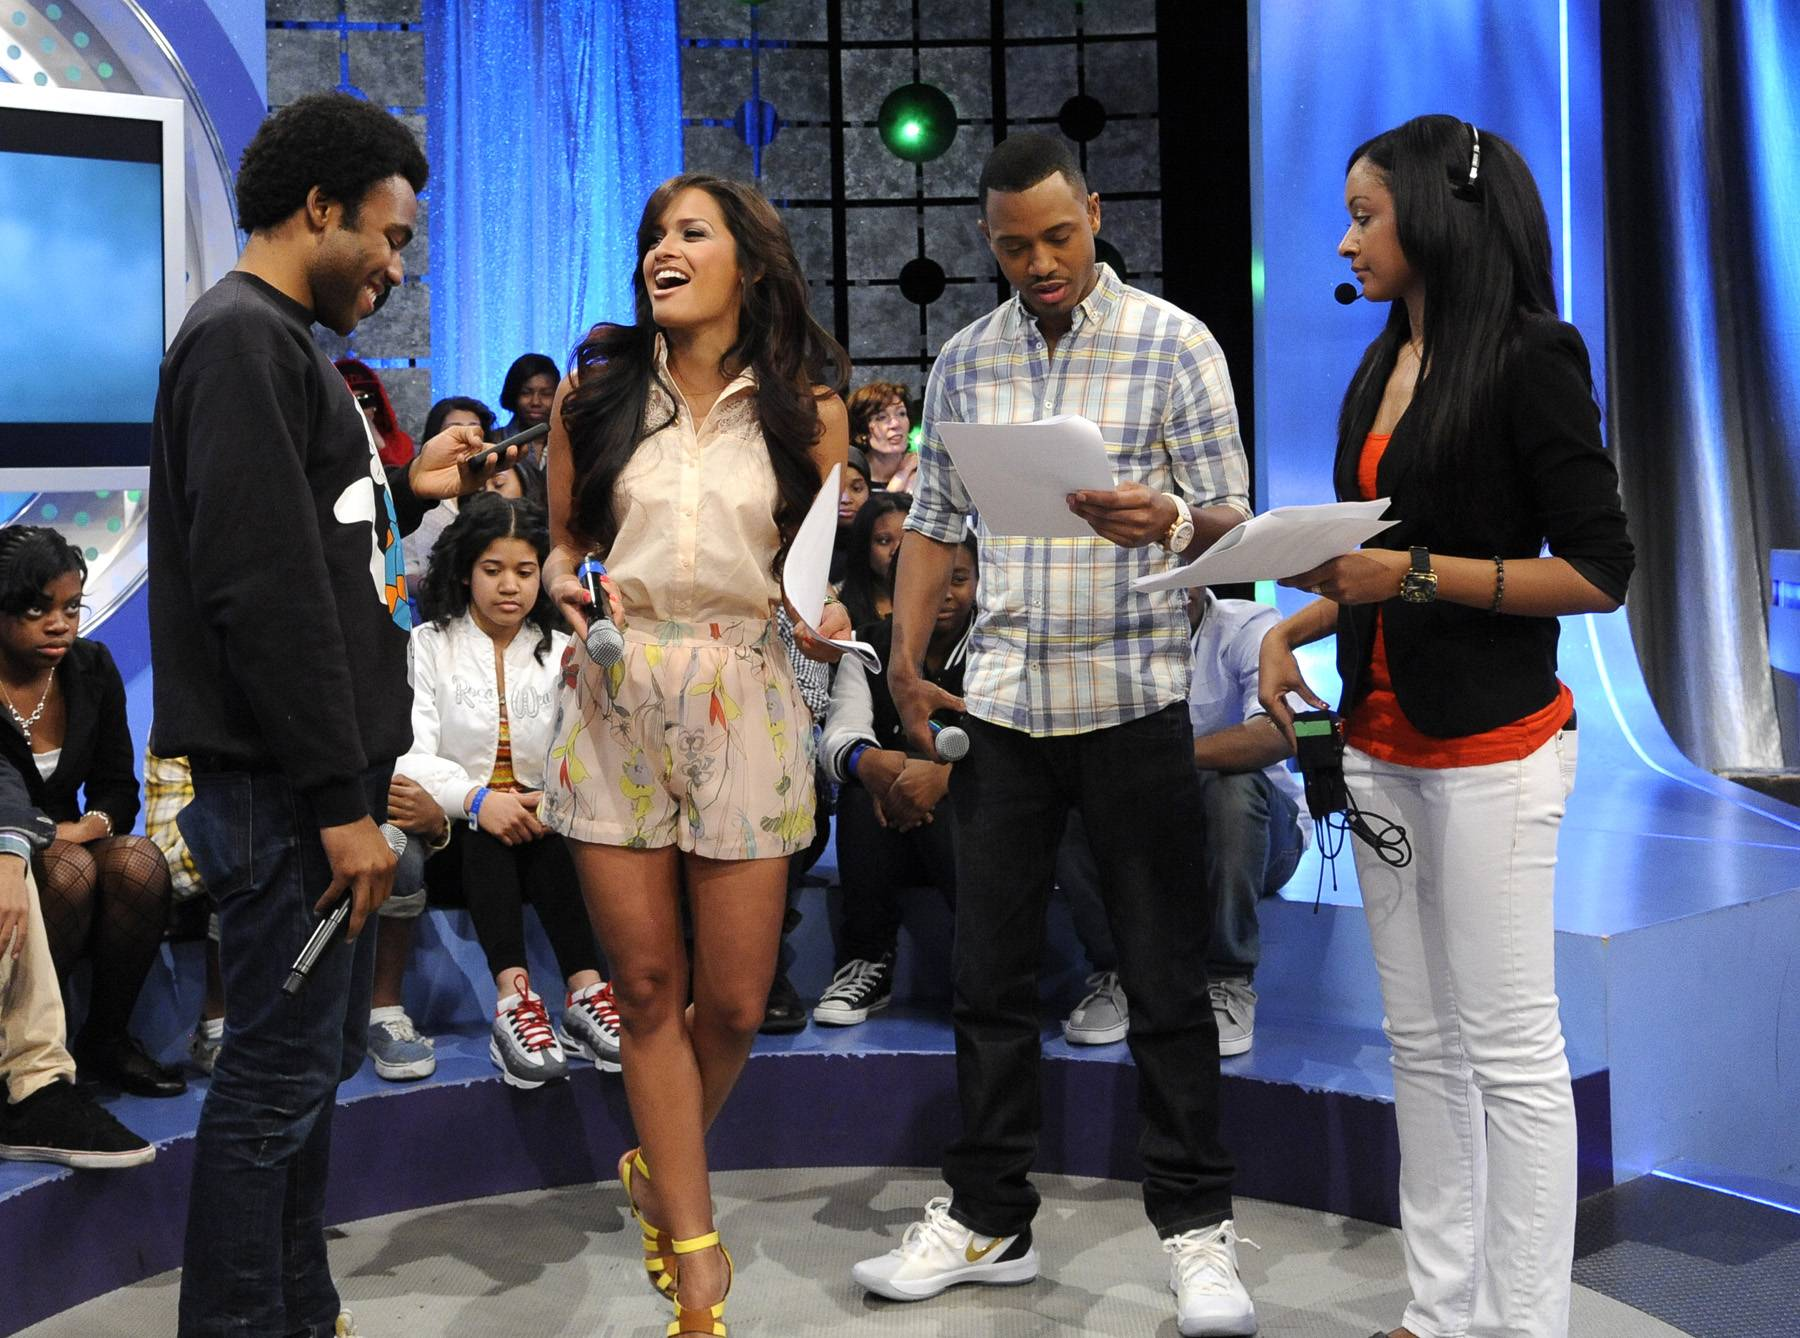 On Deck - Childish Gambino with Rocsi Diaz and Terrence J during a commercial break at 106 & Park, May 1, 2012. (Photo: John Ricard / BET)